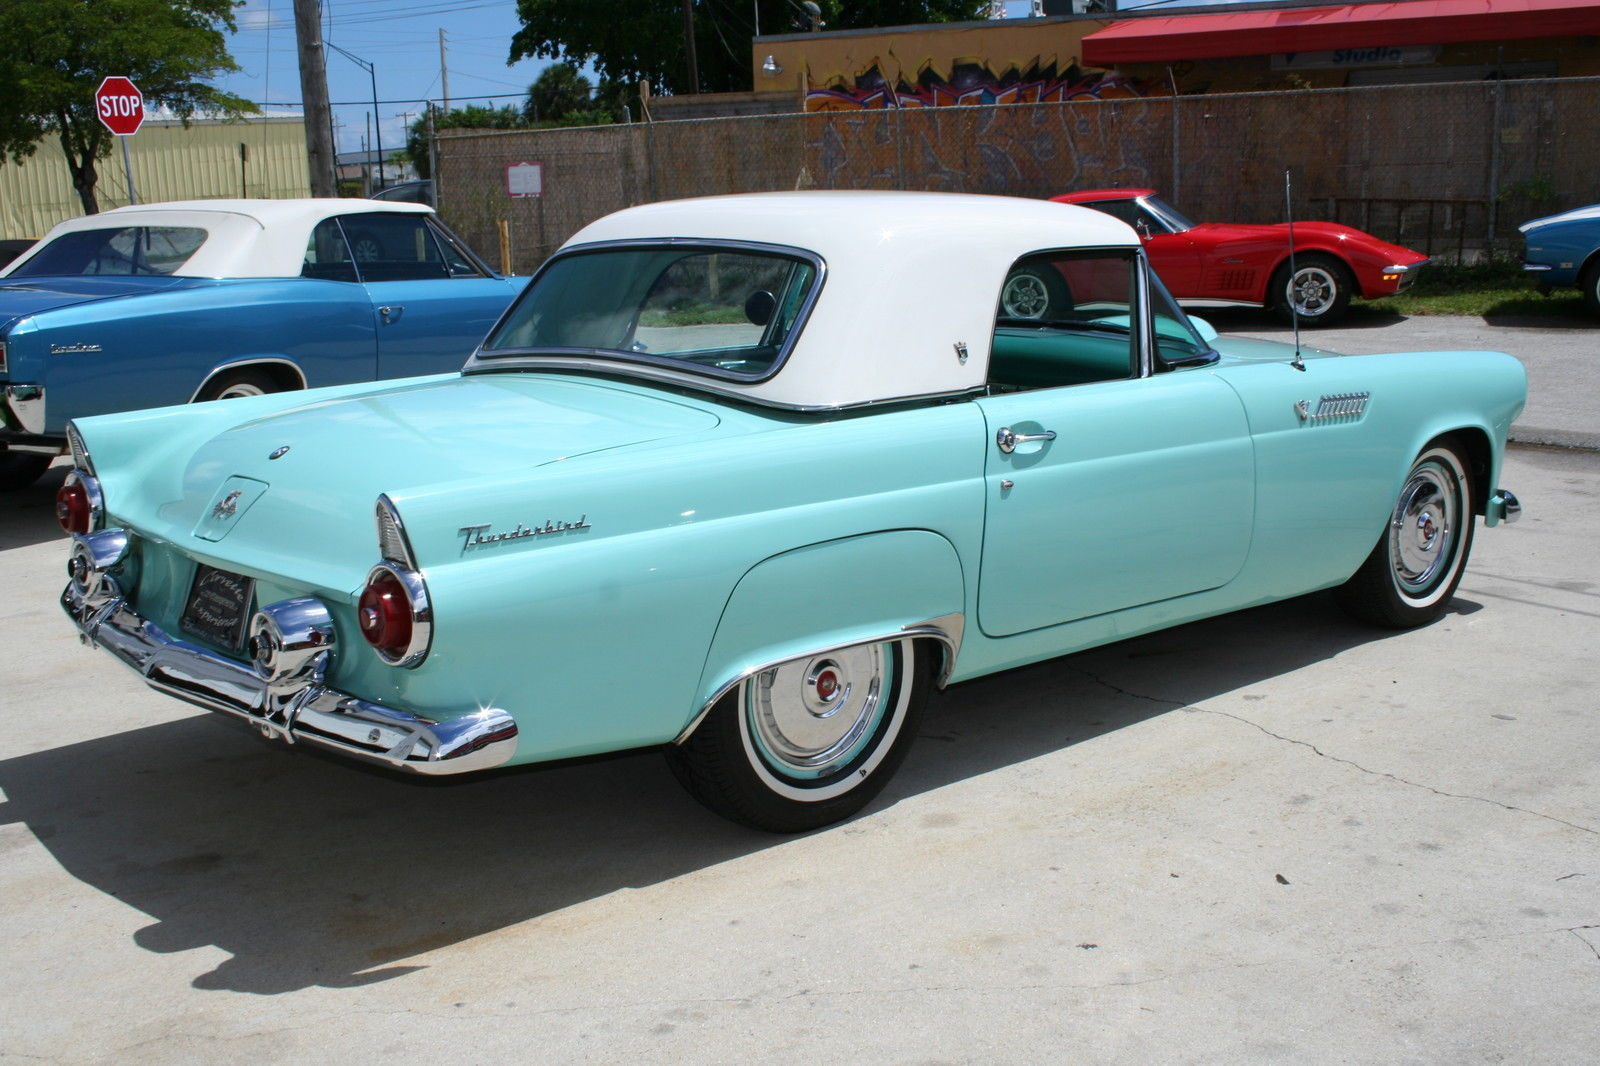 1955 Ford Thunderbird Dual Exhaust California Car Older Body Off 1954 Convertible Restoration Classic For Sale